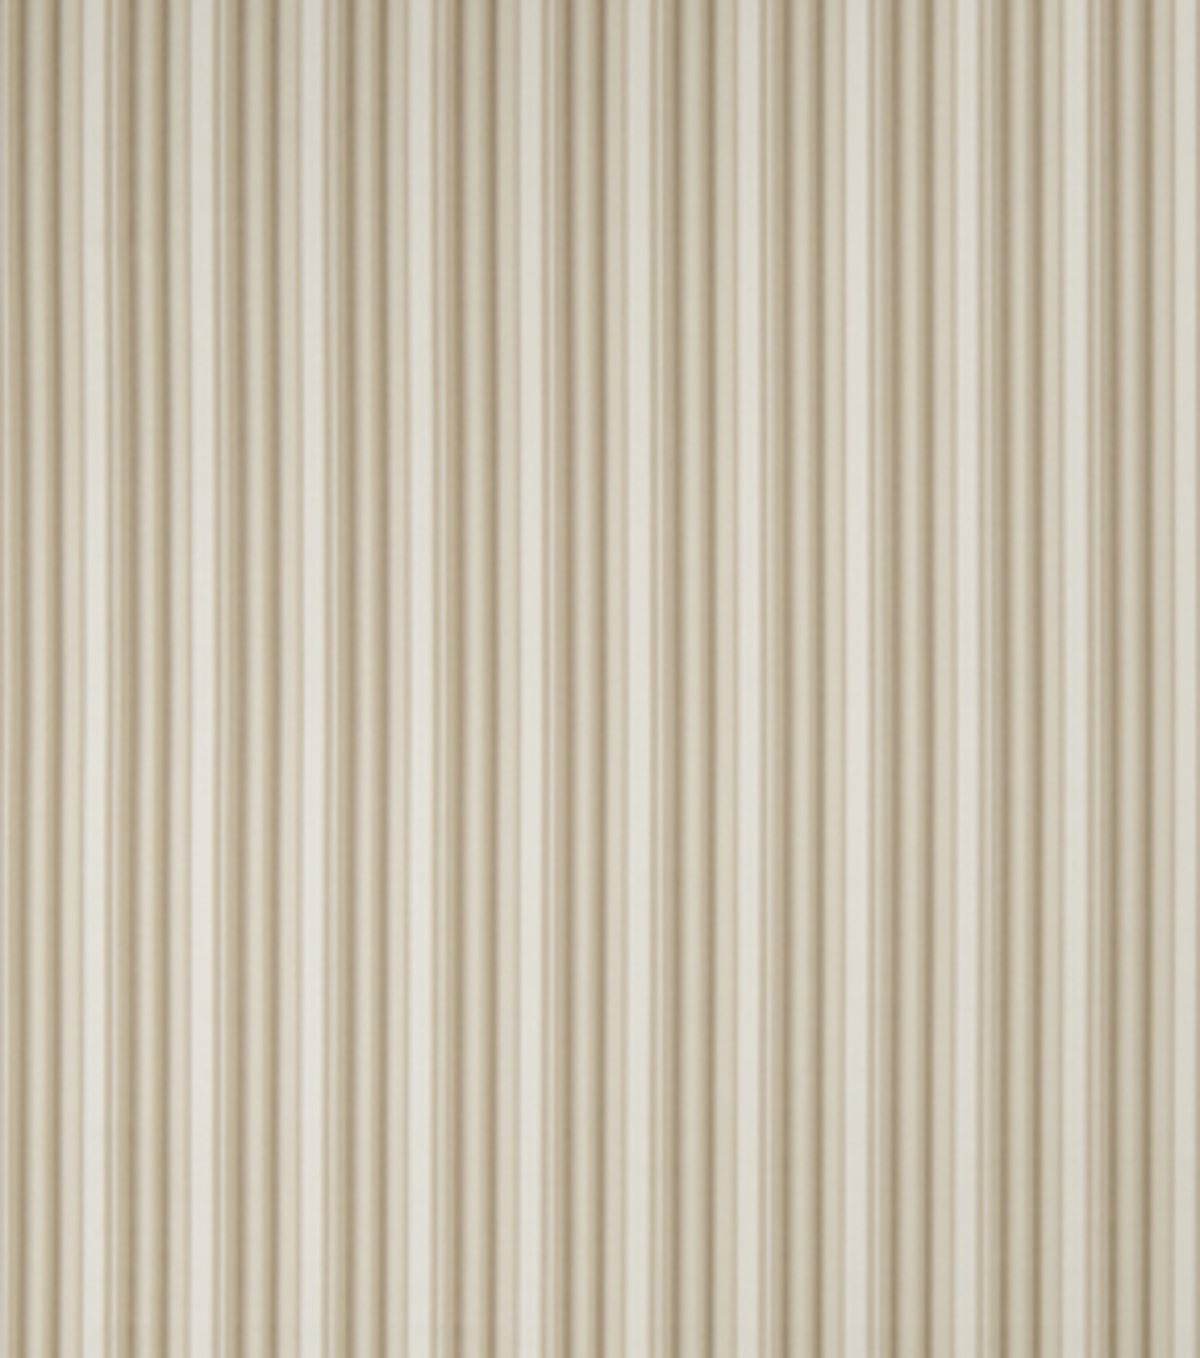 Home Decor 8\u0022x8\u0022 Fabric Swatch-Eaton Square Meadowlark Linen